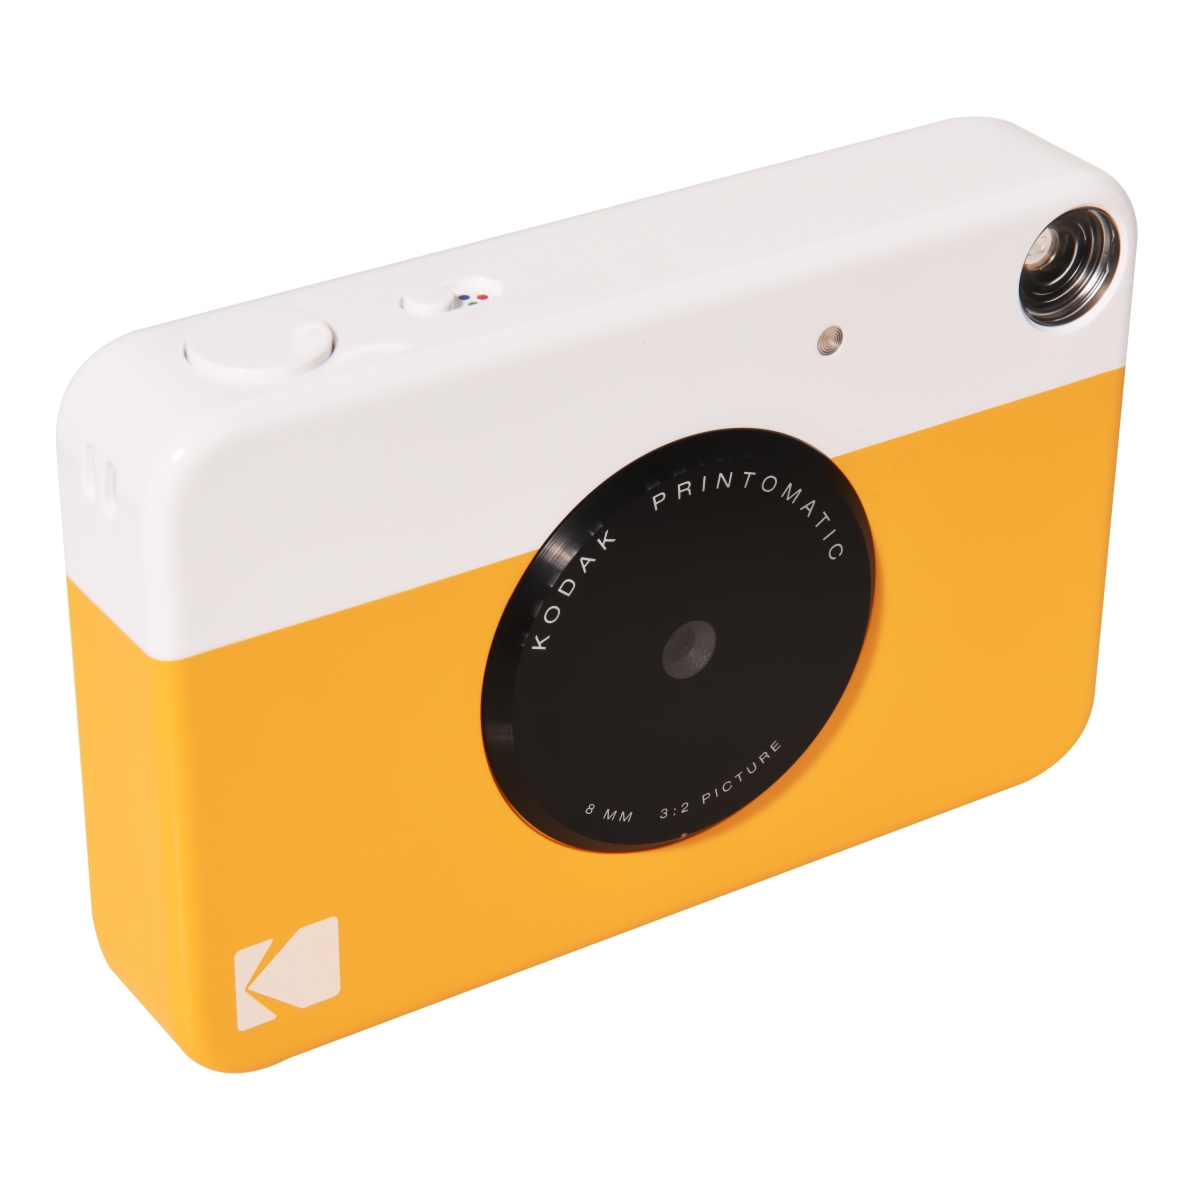 Meet the Kodak Printomatic, the Hybrid Instant Camera...